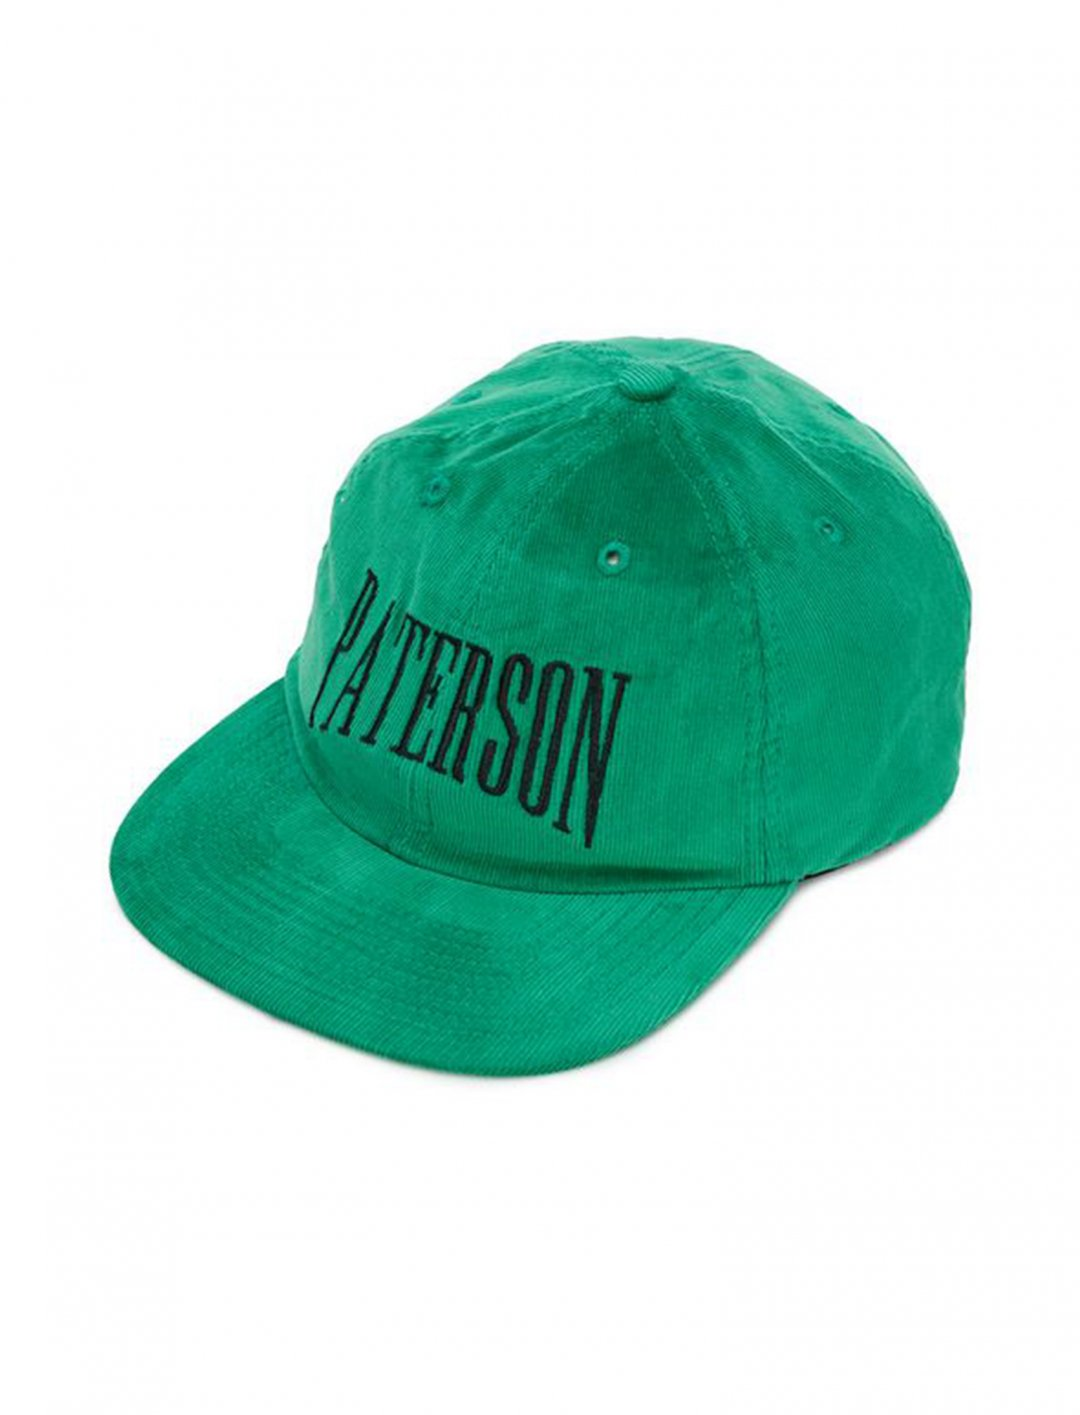 "Embroidered Logo Cap {""id"":16,""product_section_id"":1,""name"":""Accessories"",""order"":15} Paterson"